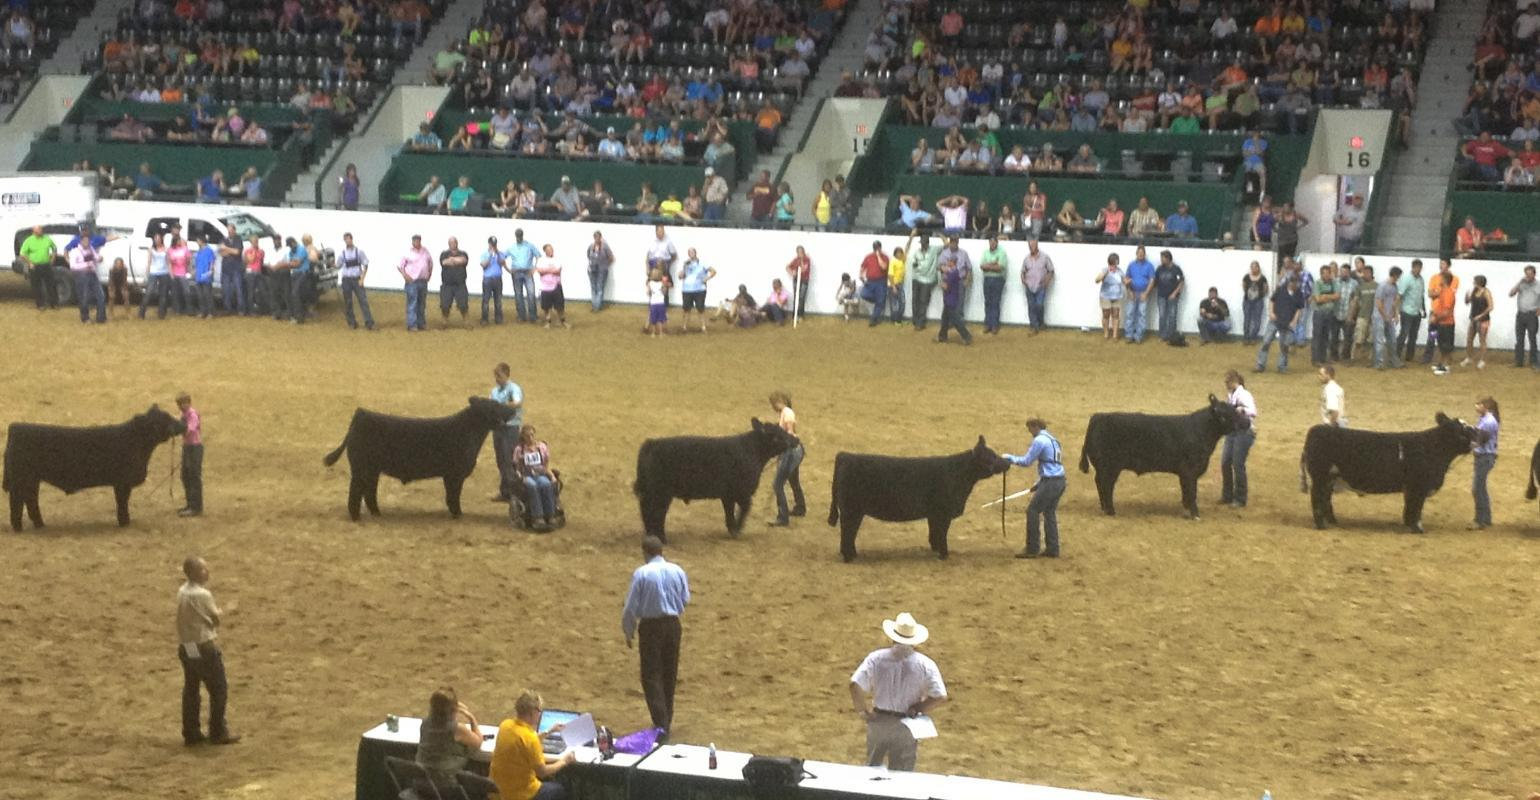 minnesota-state-fair-cattle-show.jpg